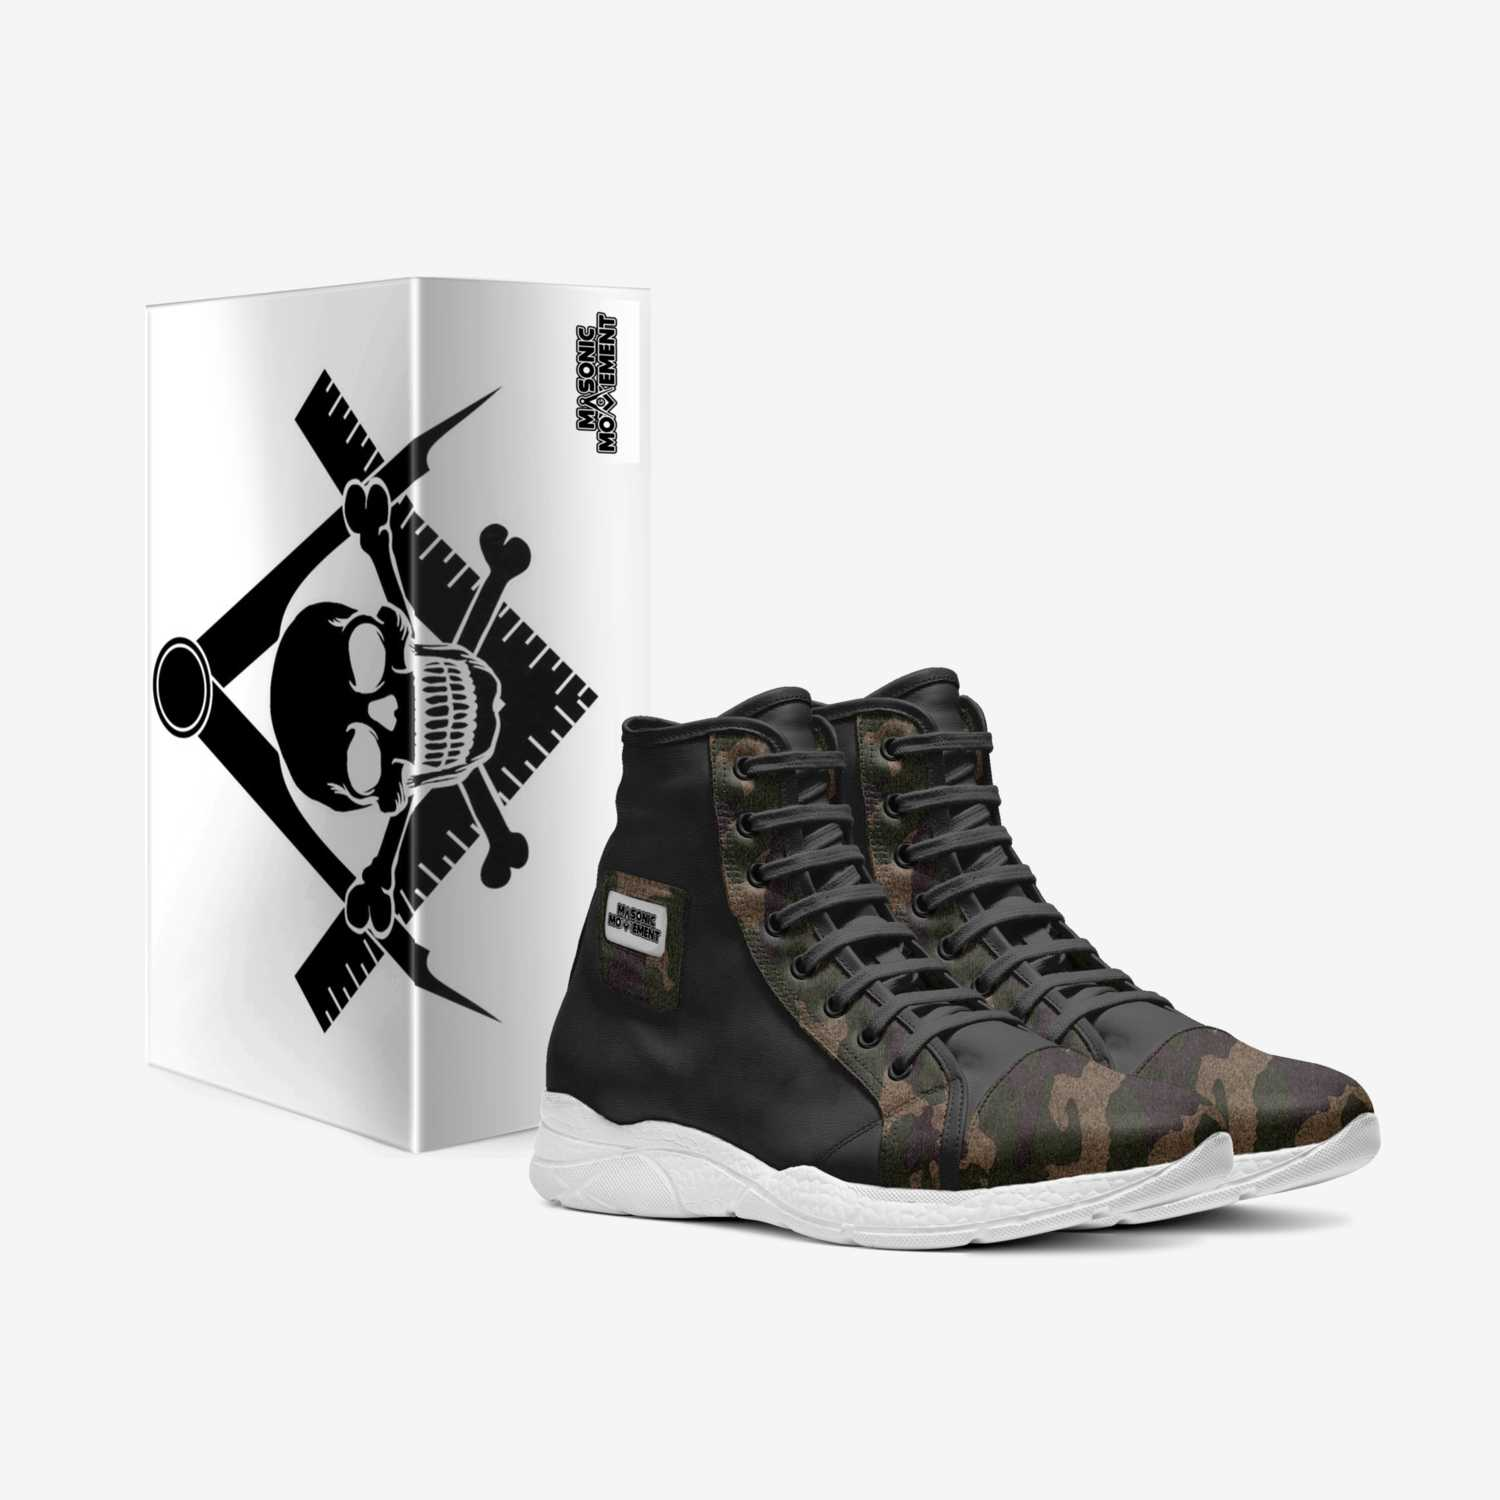 Masonic Movement custom made in Italy shoes by James Thomas | Box view